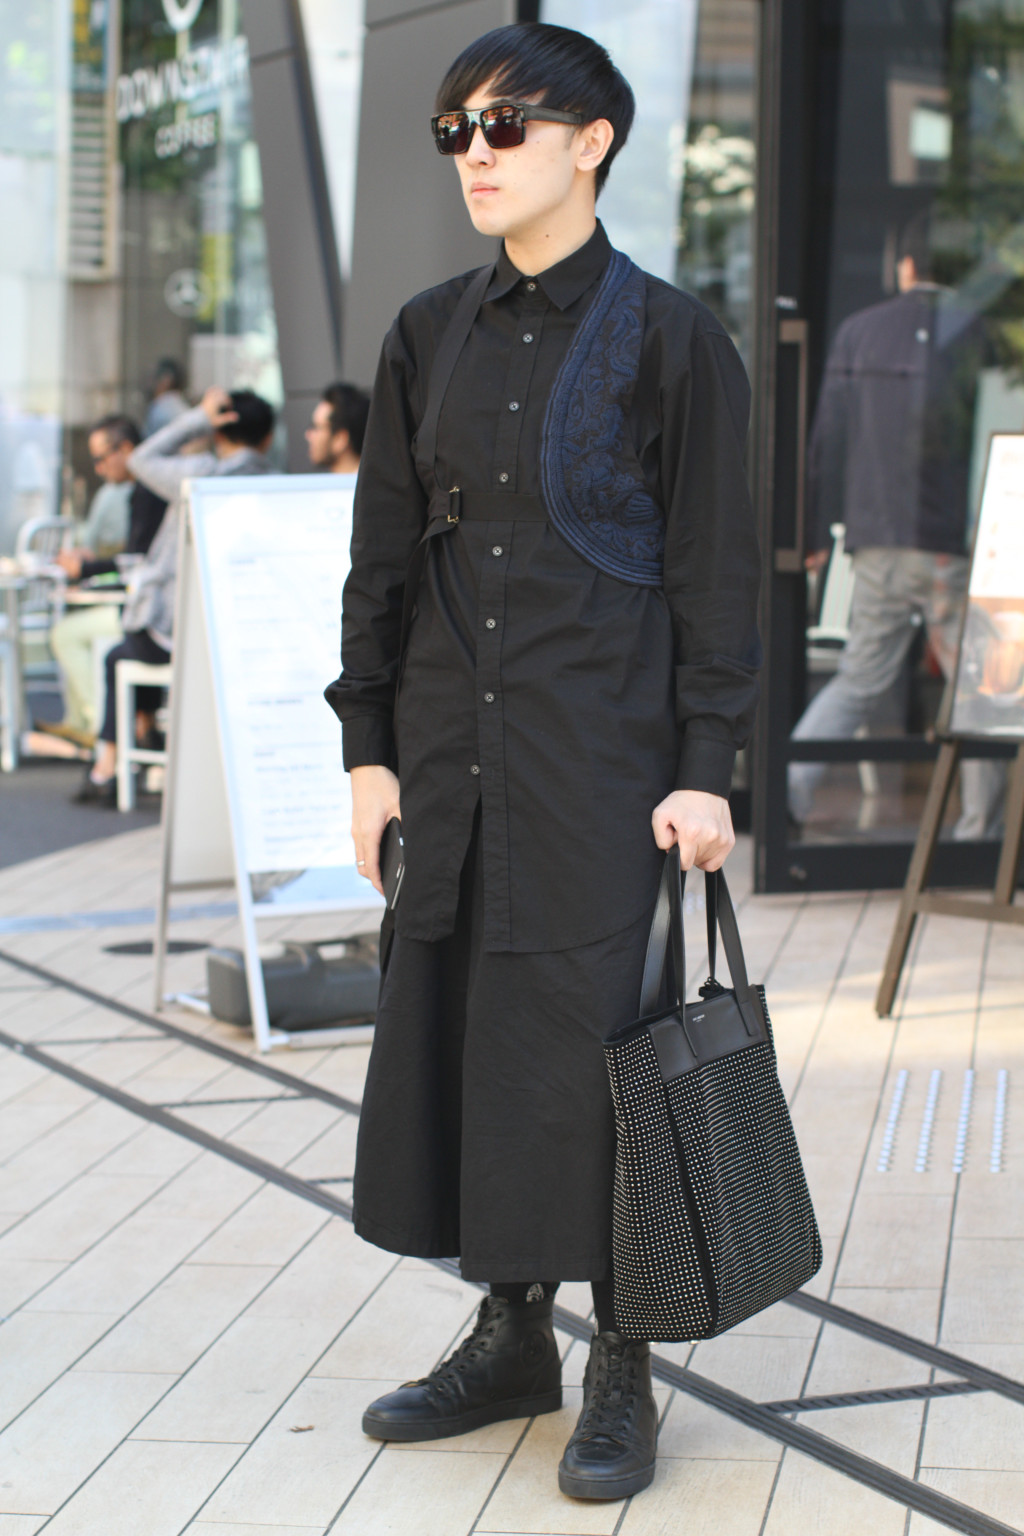 tokyo fashion week, spring 2016, menswear, ootd, outfit, blogger